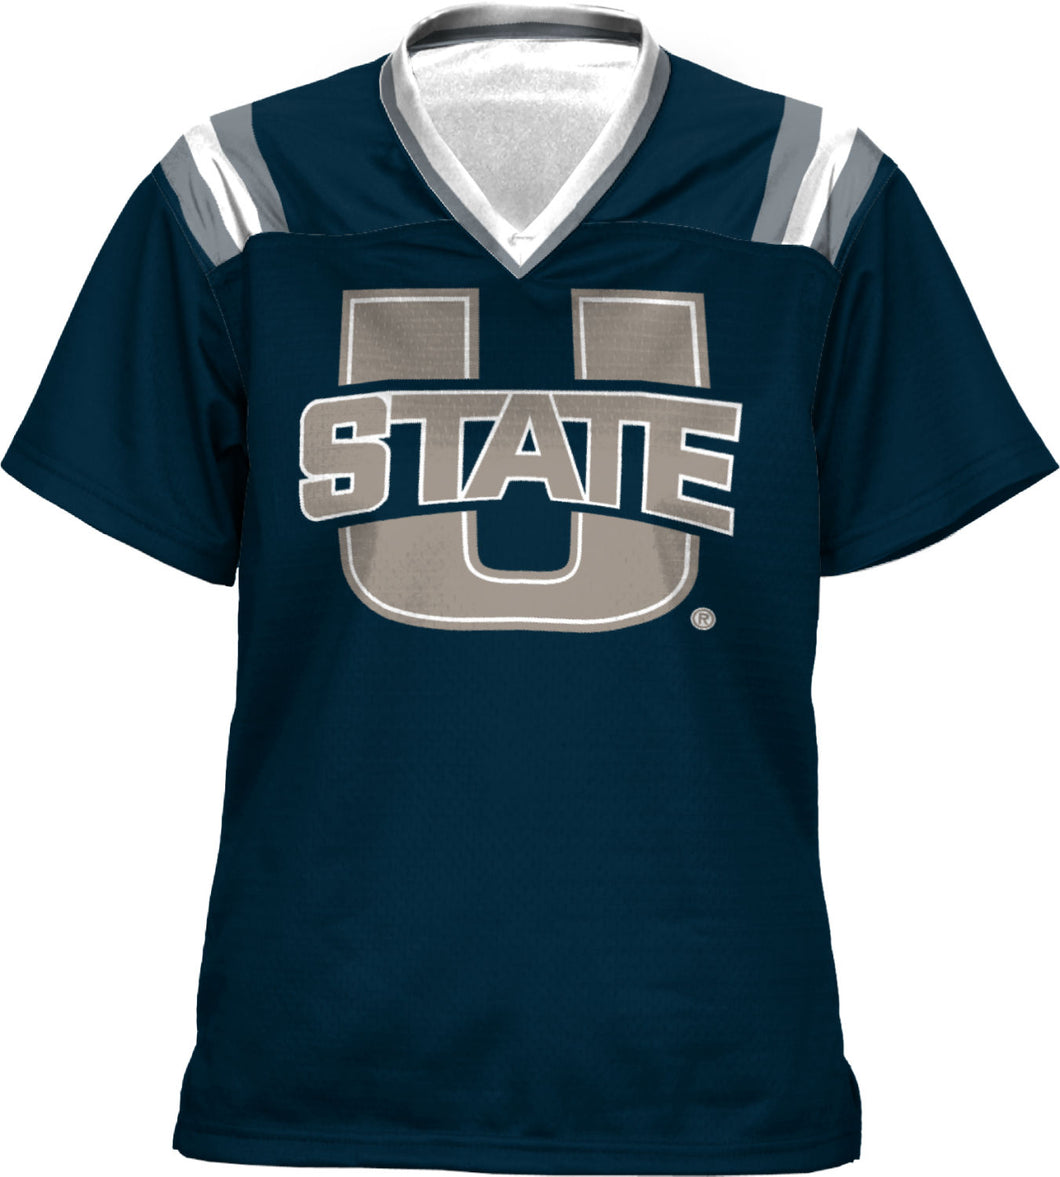 Utah State University: Girls' Football Fan Jersey - Goal Line